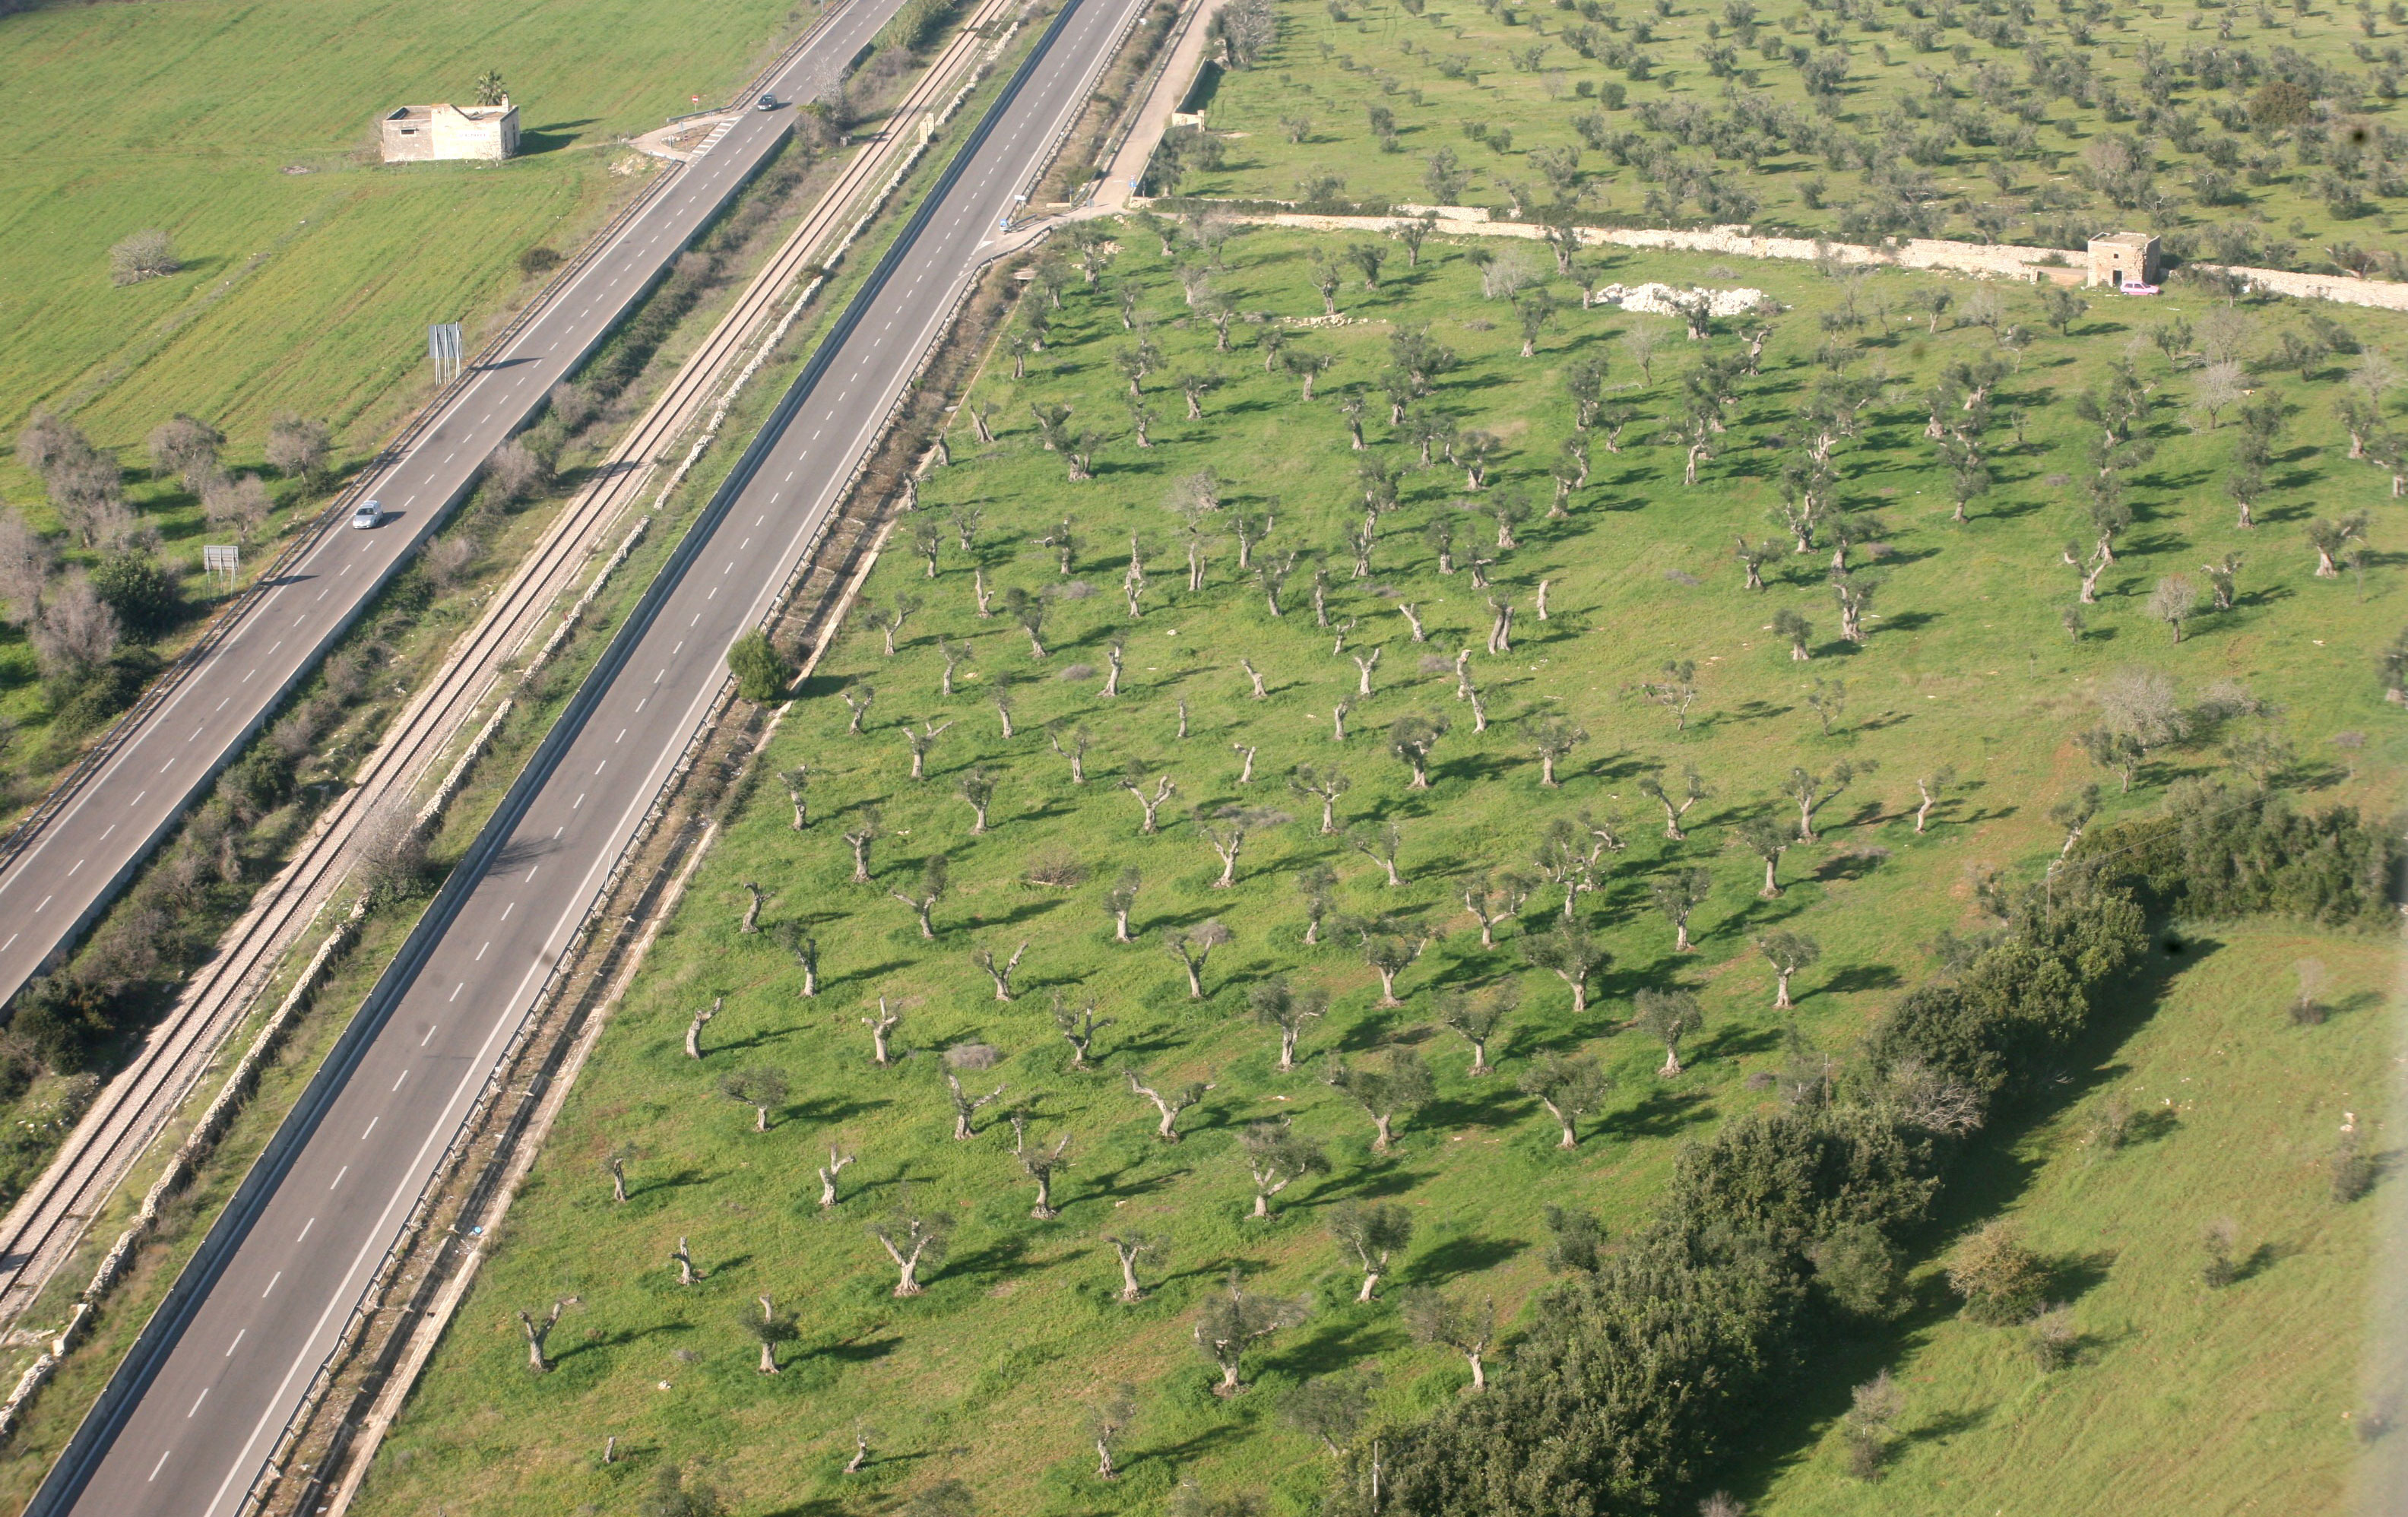 Olive trees beside a highway in Italy